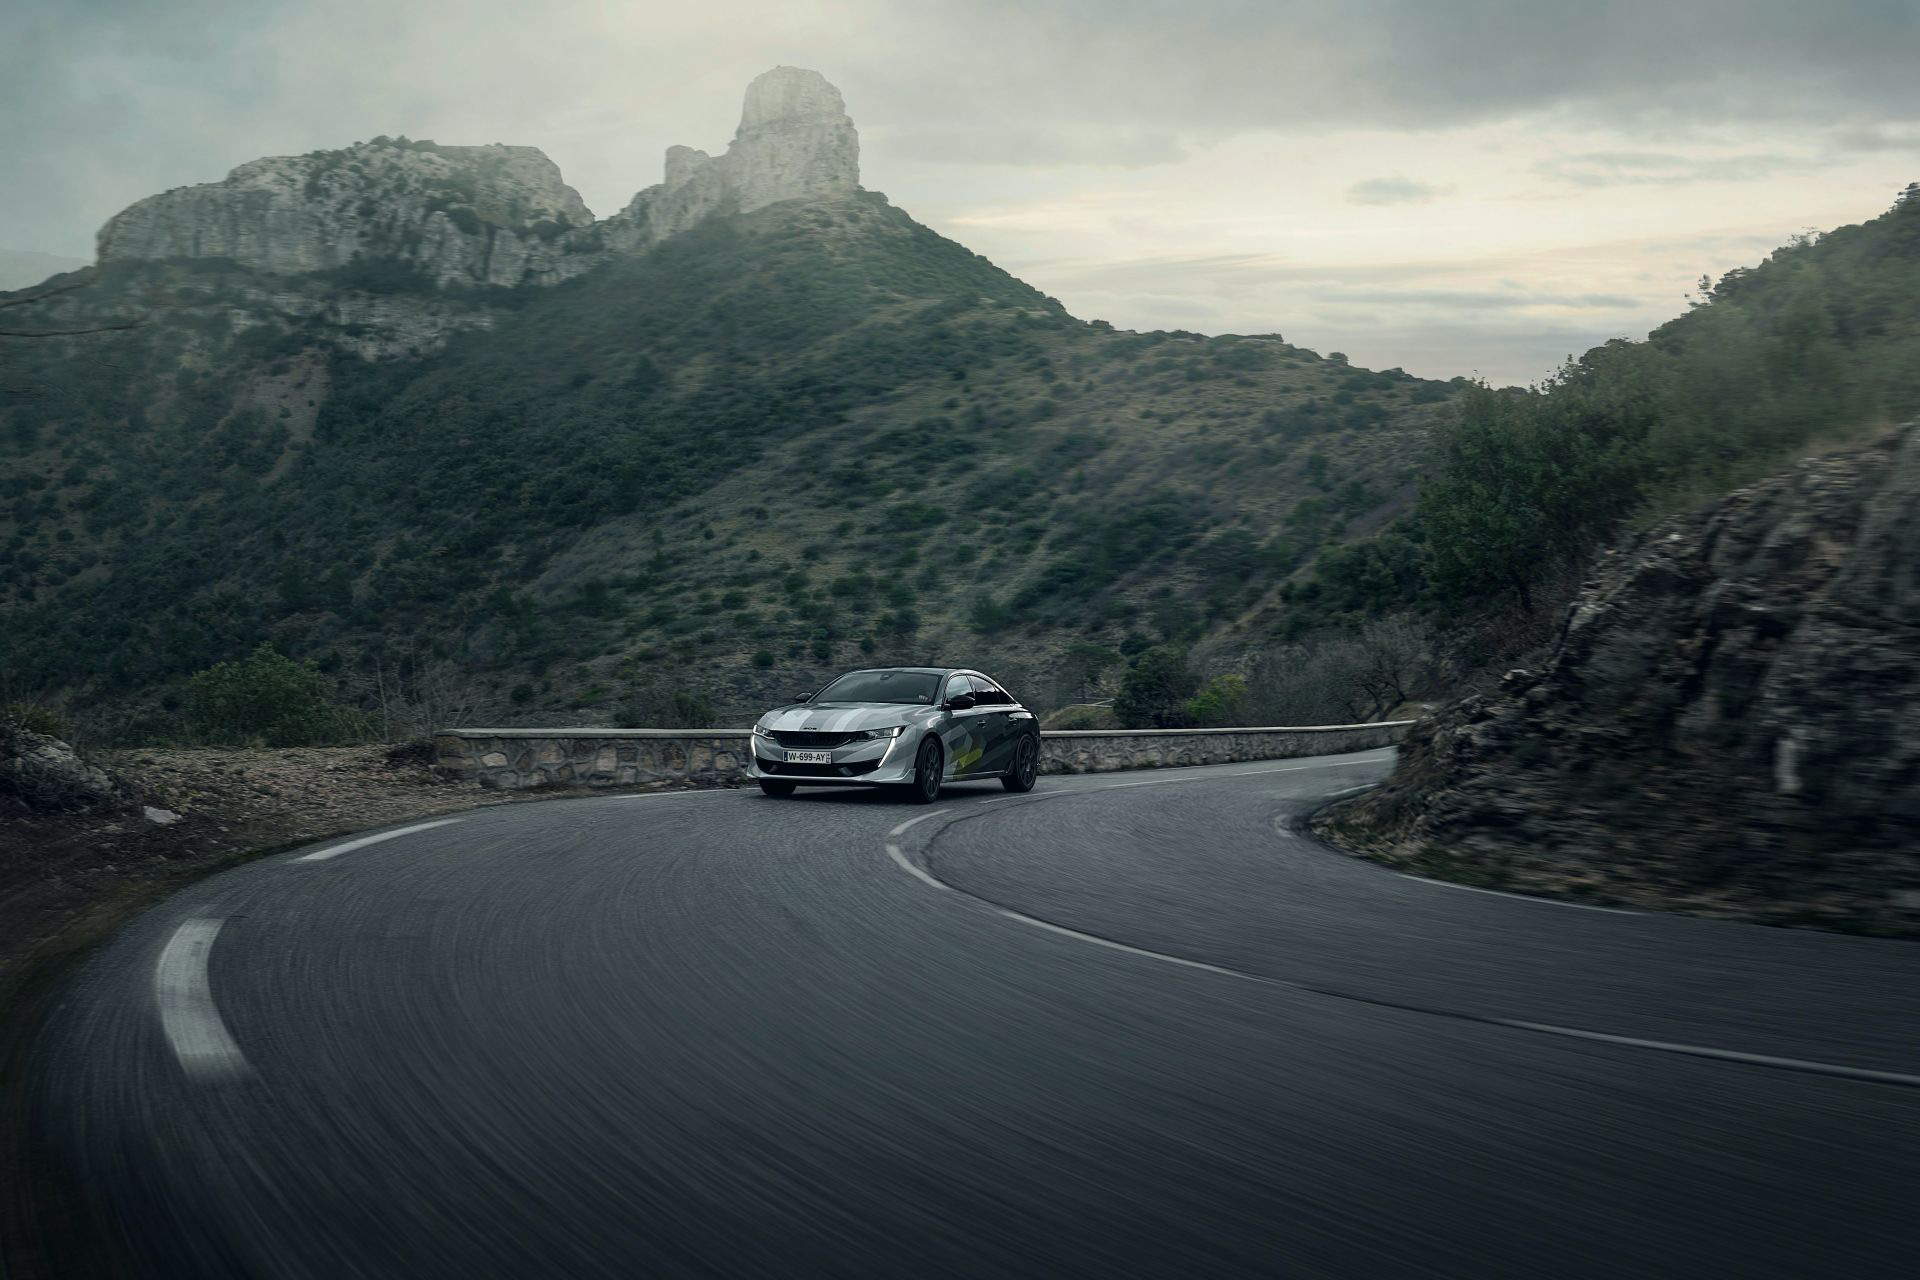 peugeot 508 sport engineered tung them anh lam fan them muon chi cho ngay mo ban tai viet nam